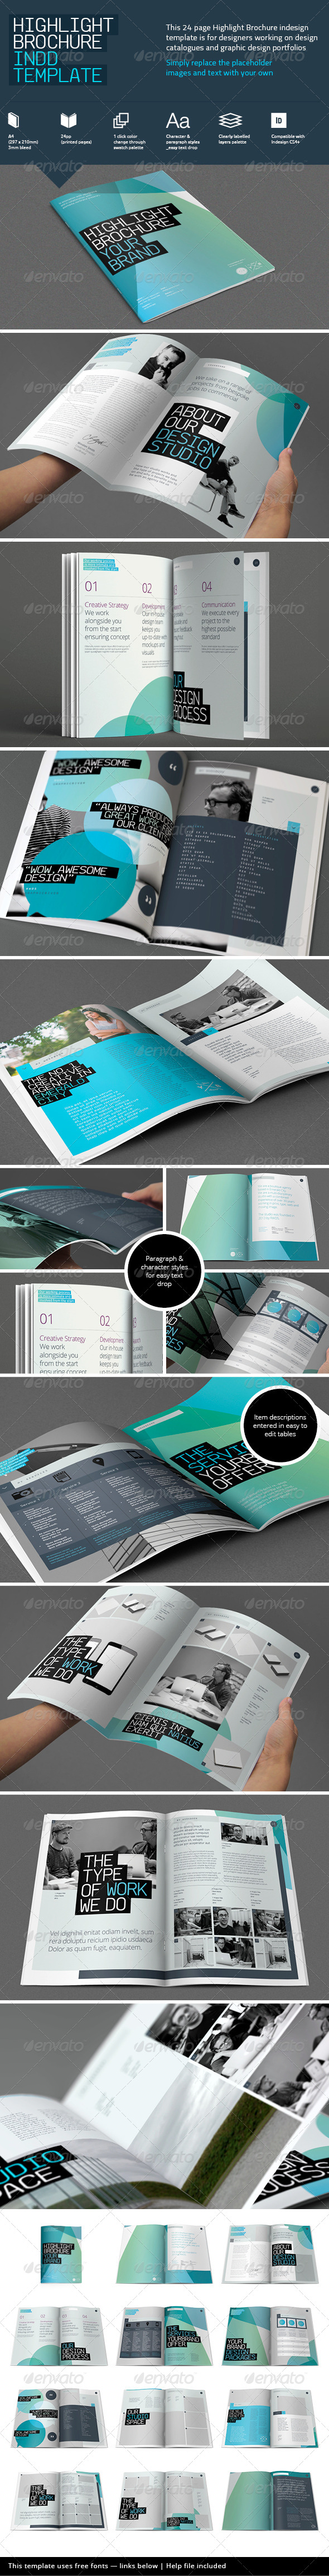 GraphicRiver Highlight Brochure Template 5576232